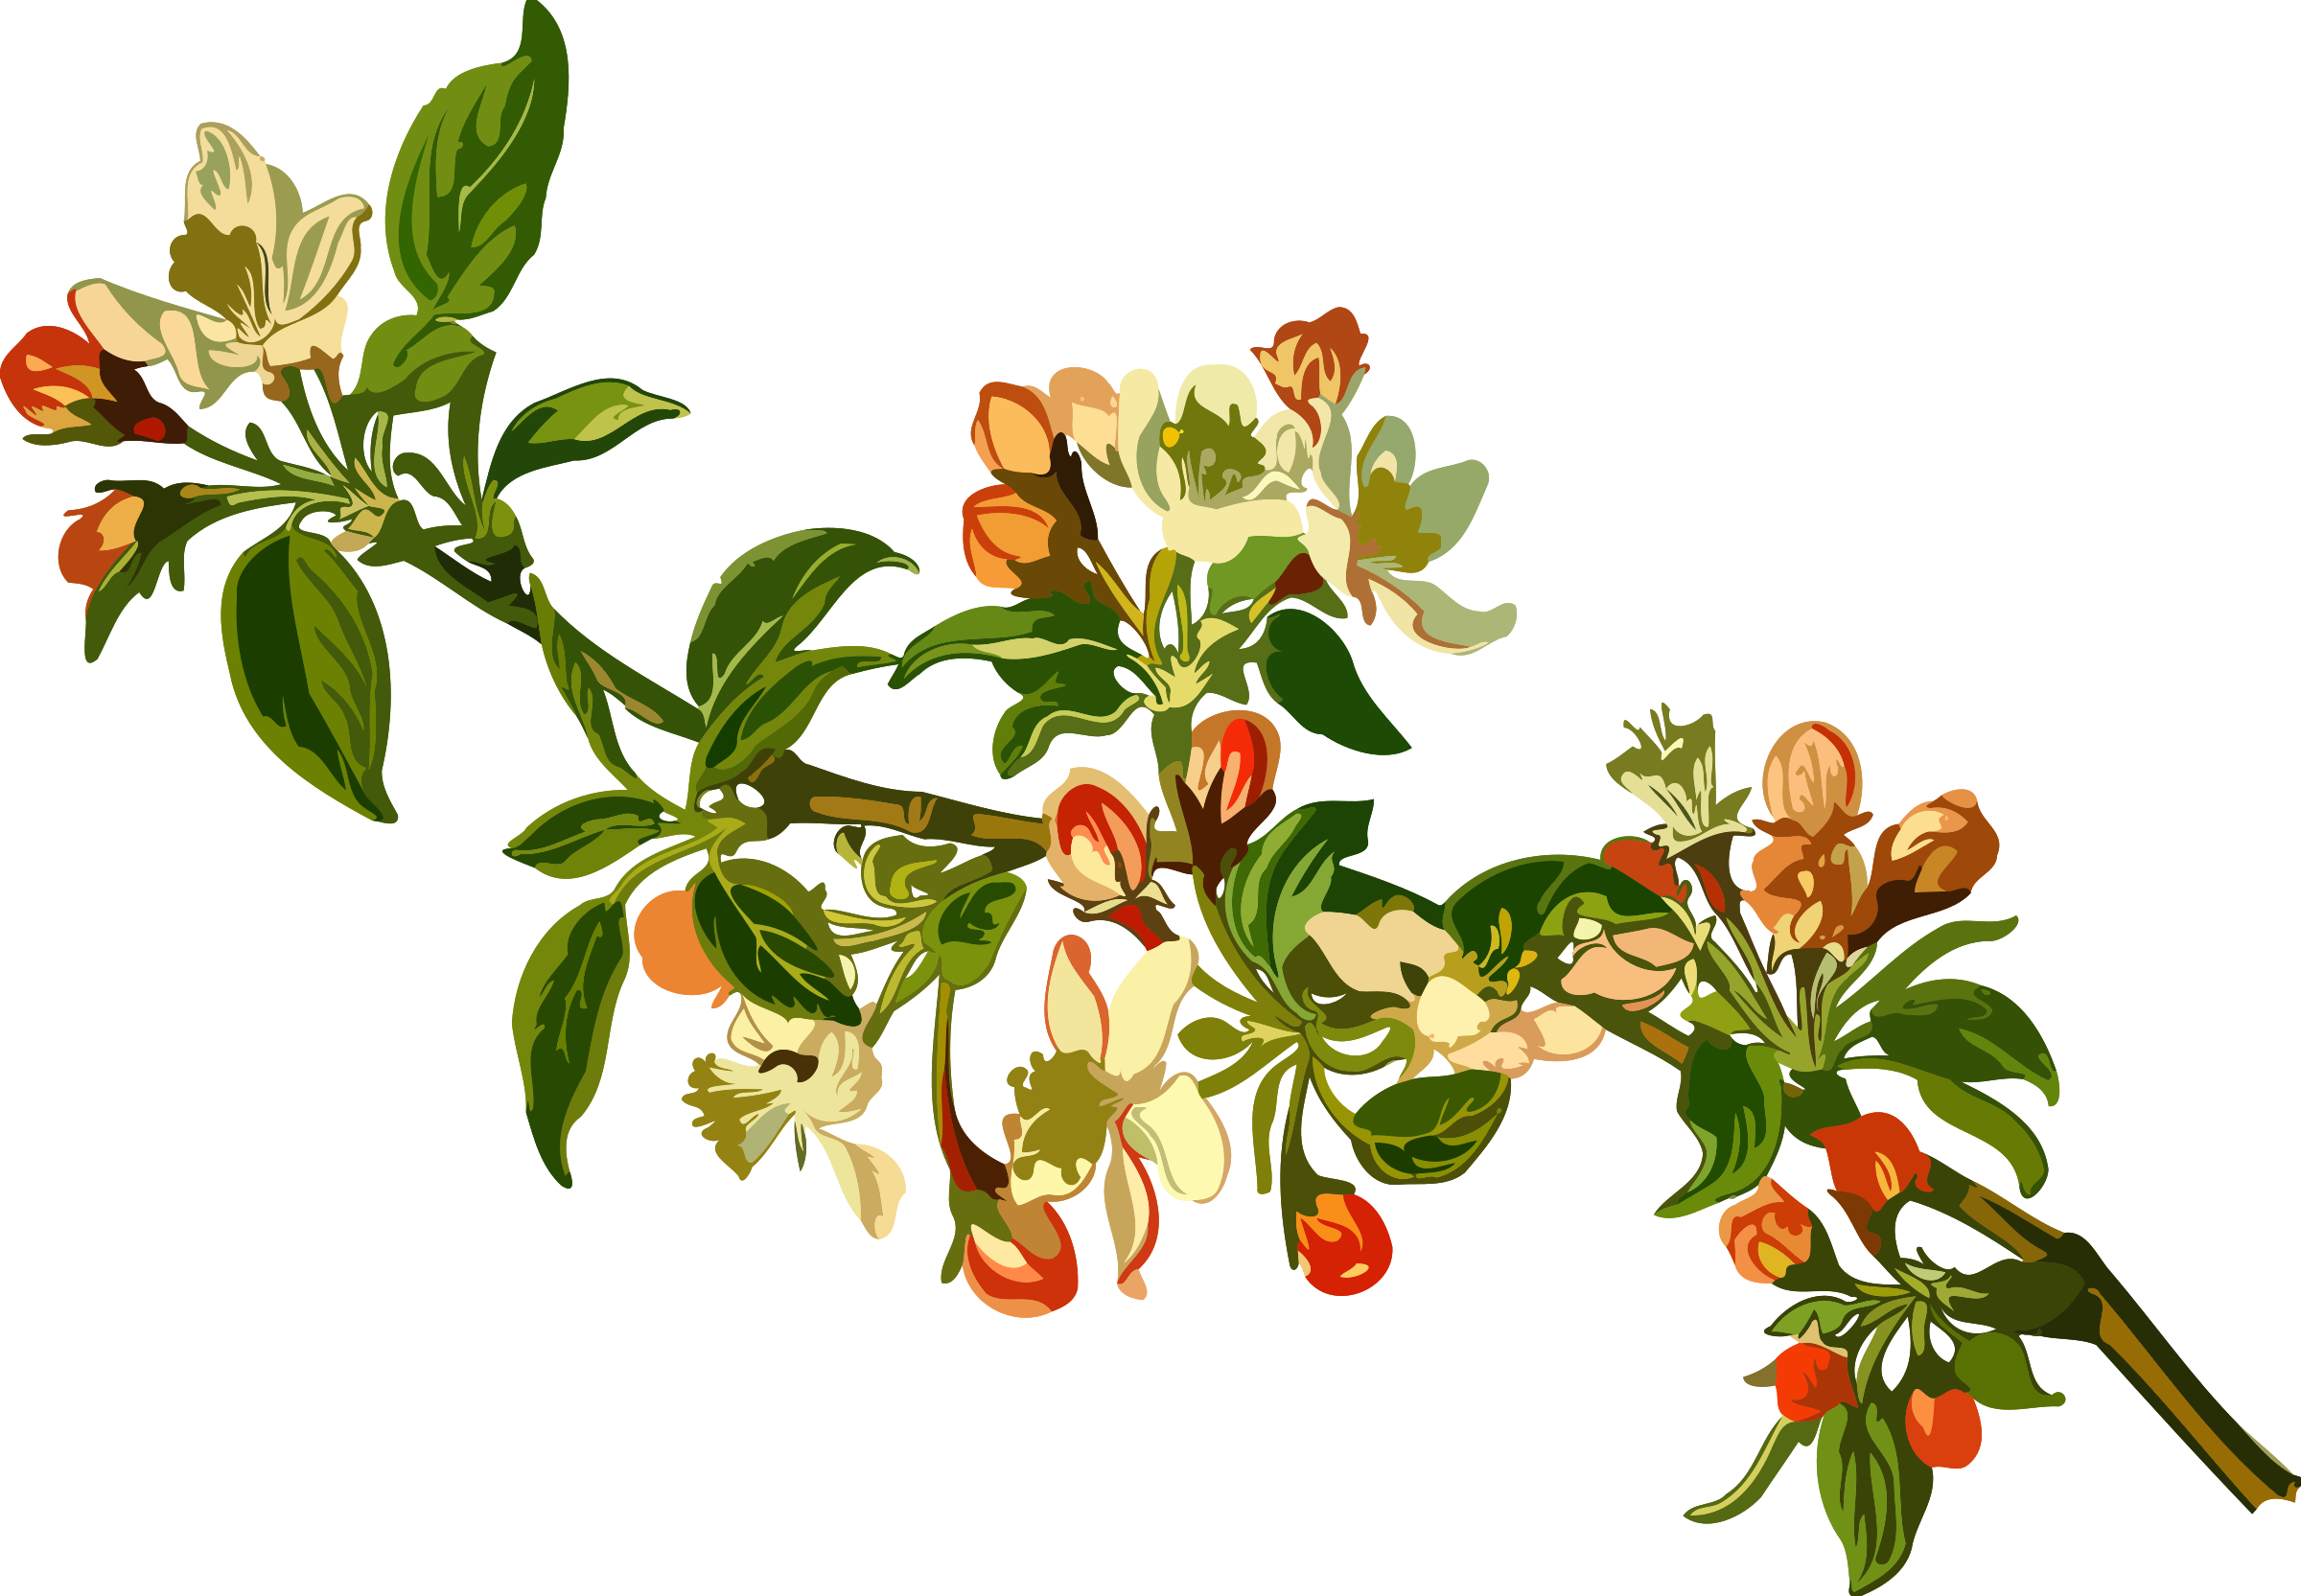 Apple tree flowers clipart graphic library library Clipart - Apple tree (low resolution) graphic library library